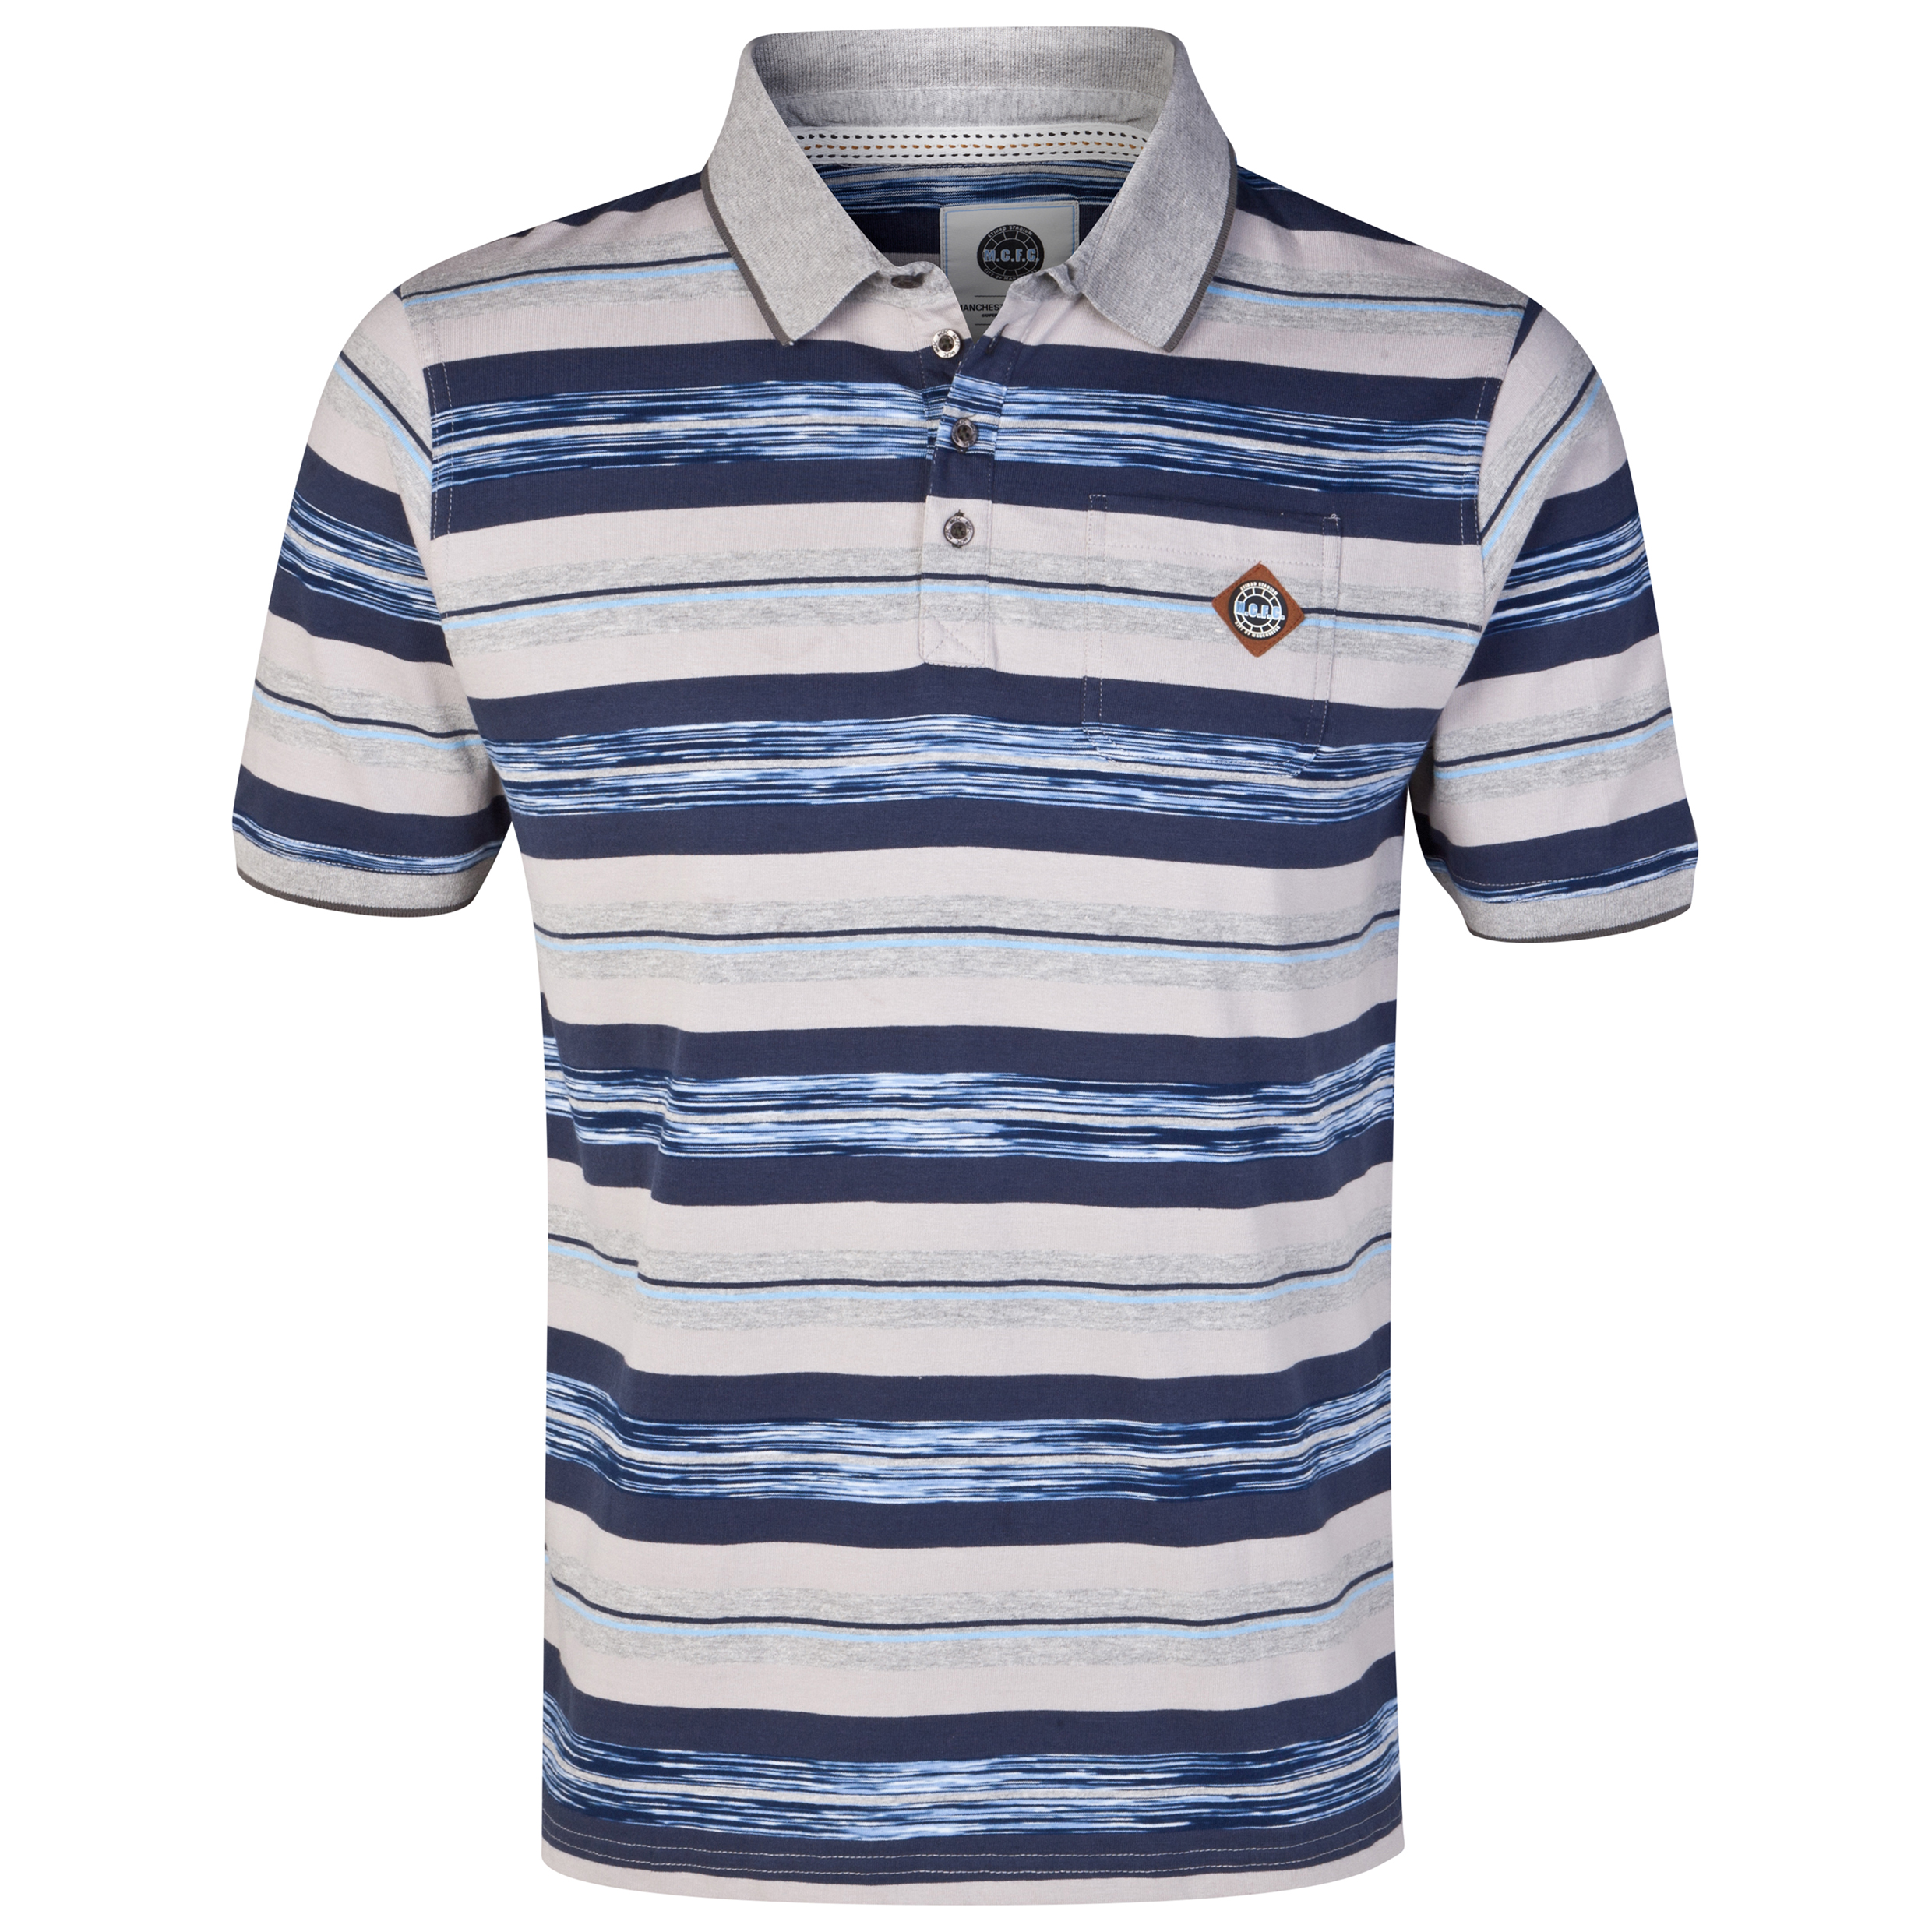 Manchester City Stripe Polo Shirt - Grey/Navy/Blue - Older Boys